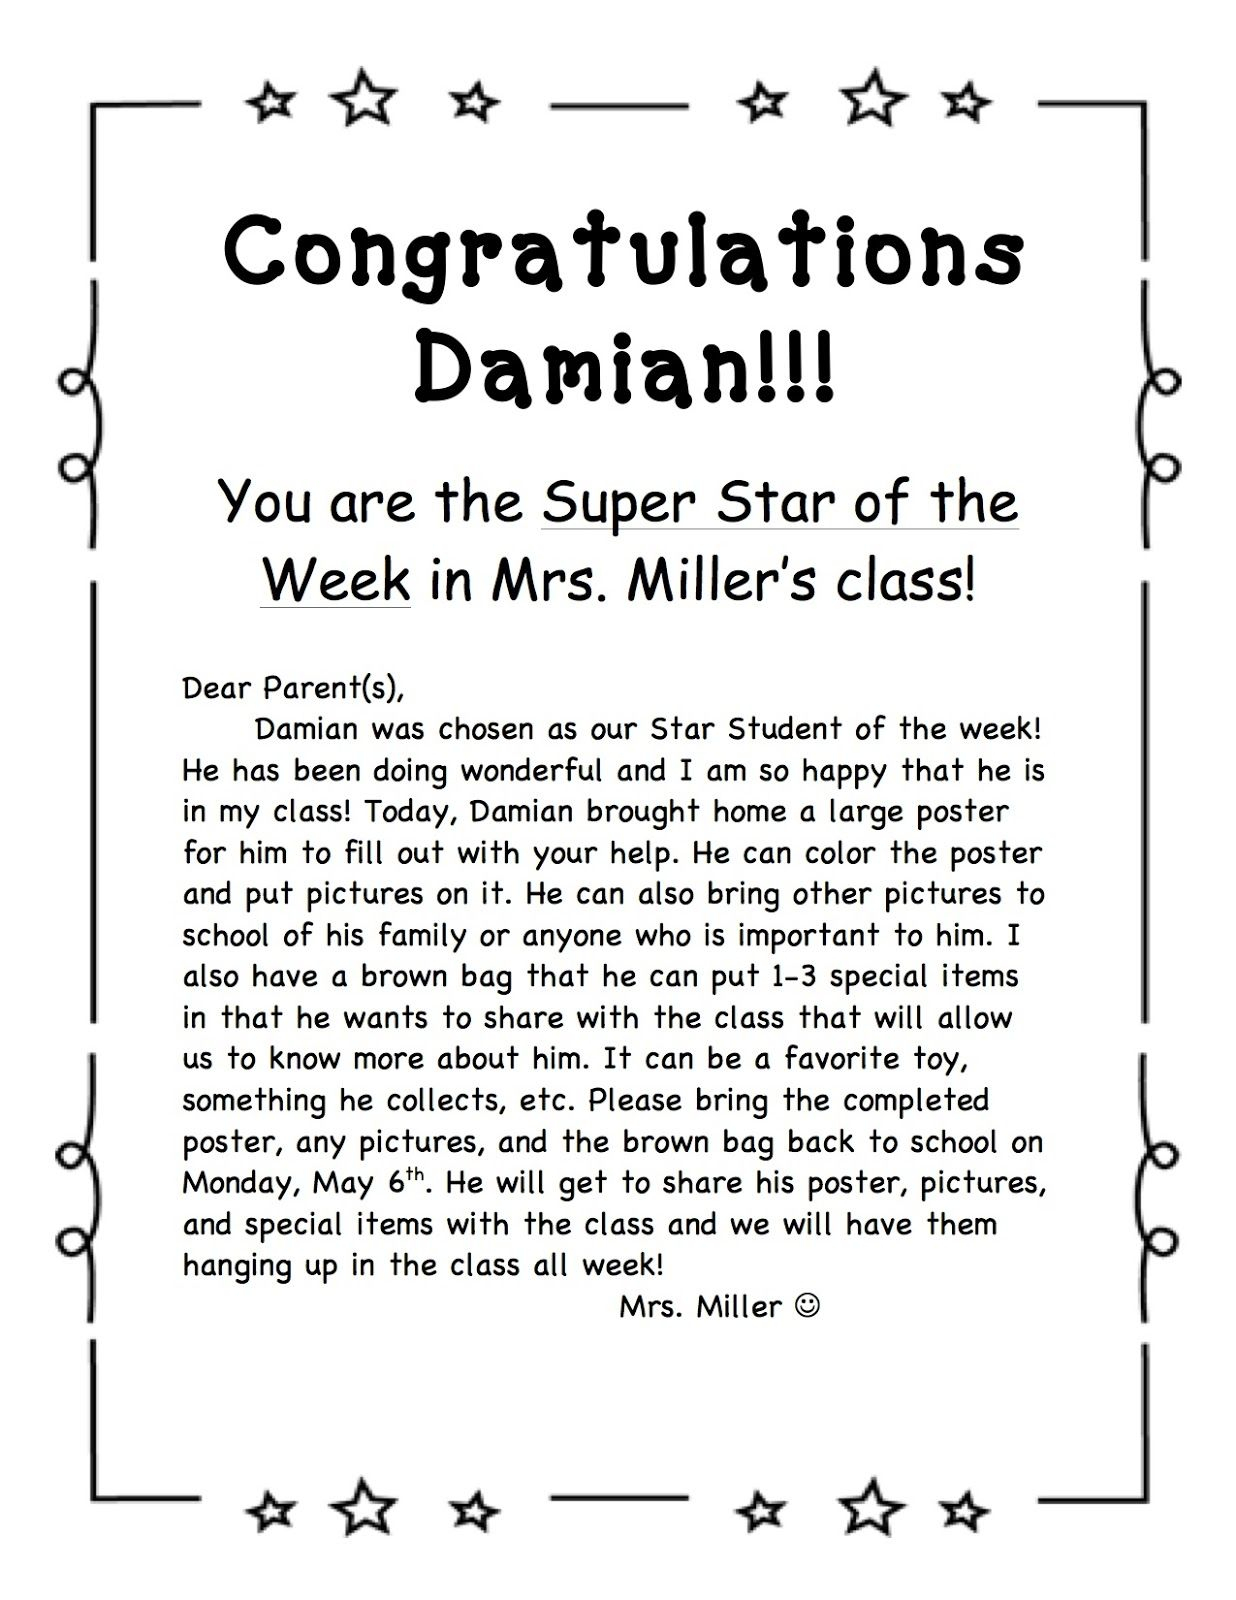 Star Student Certificate Clip Art Wording Star Student Of The Week